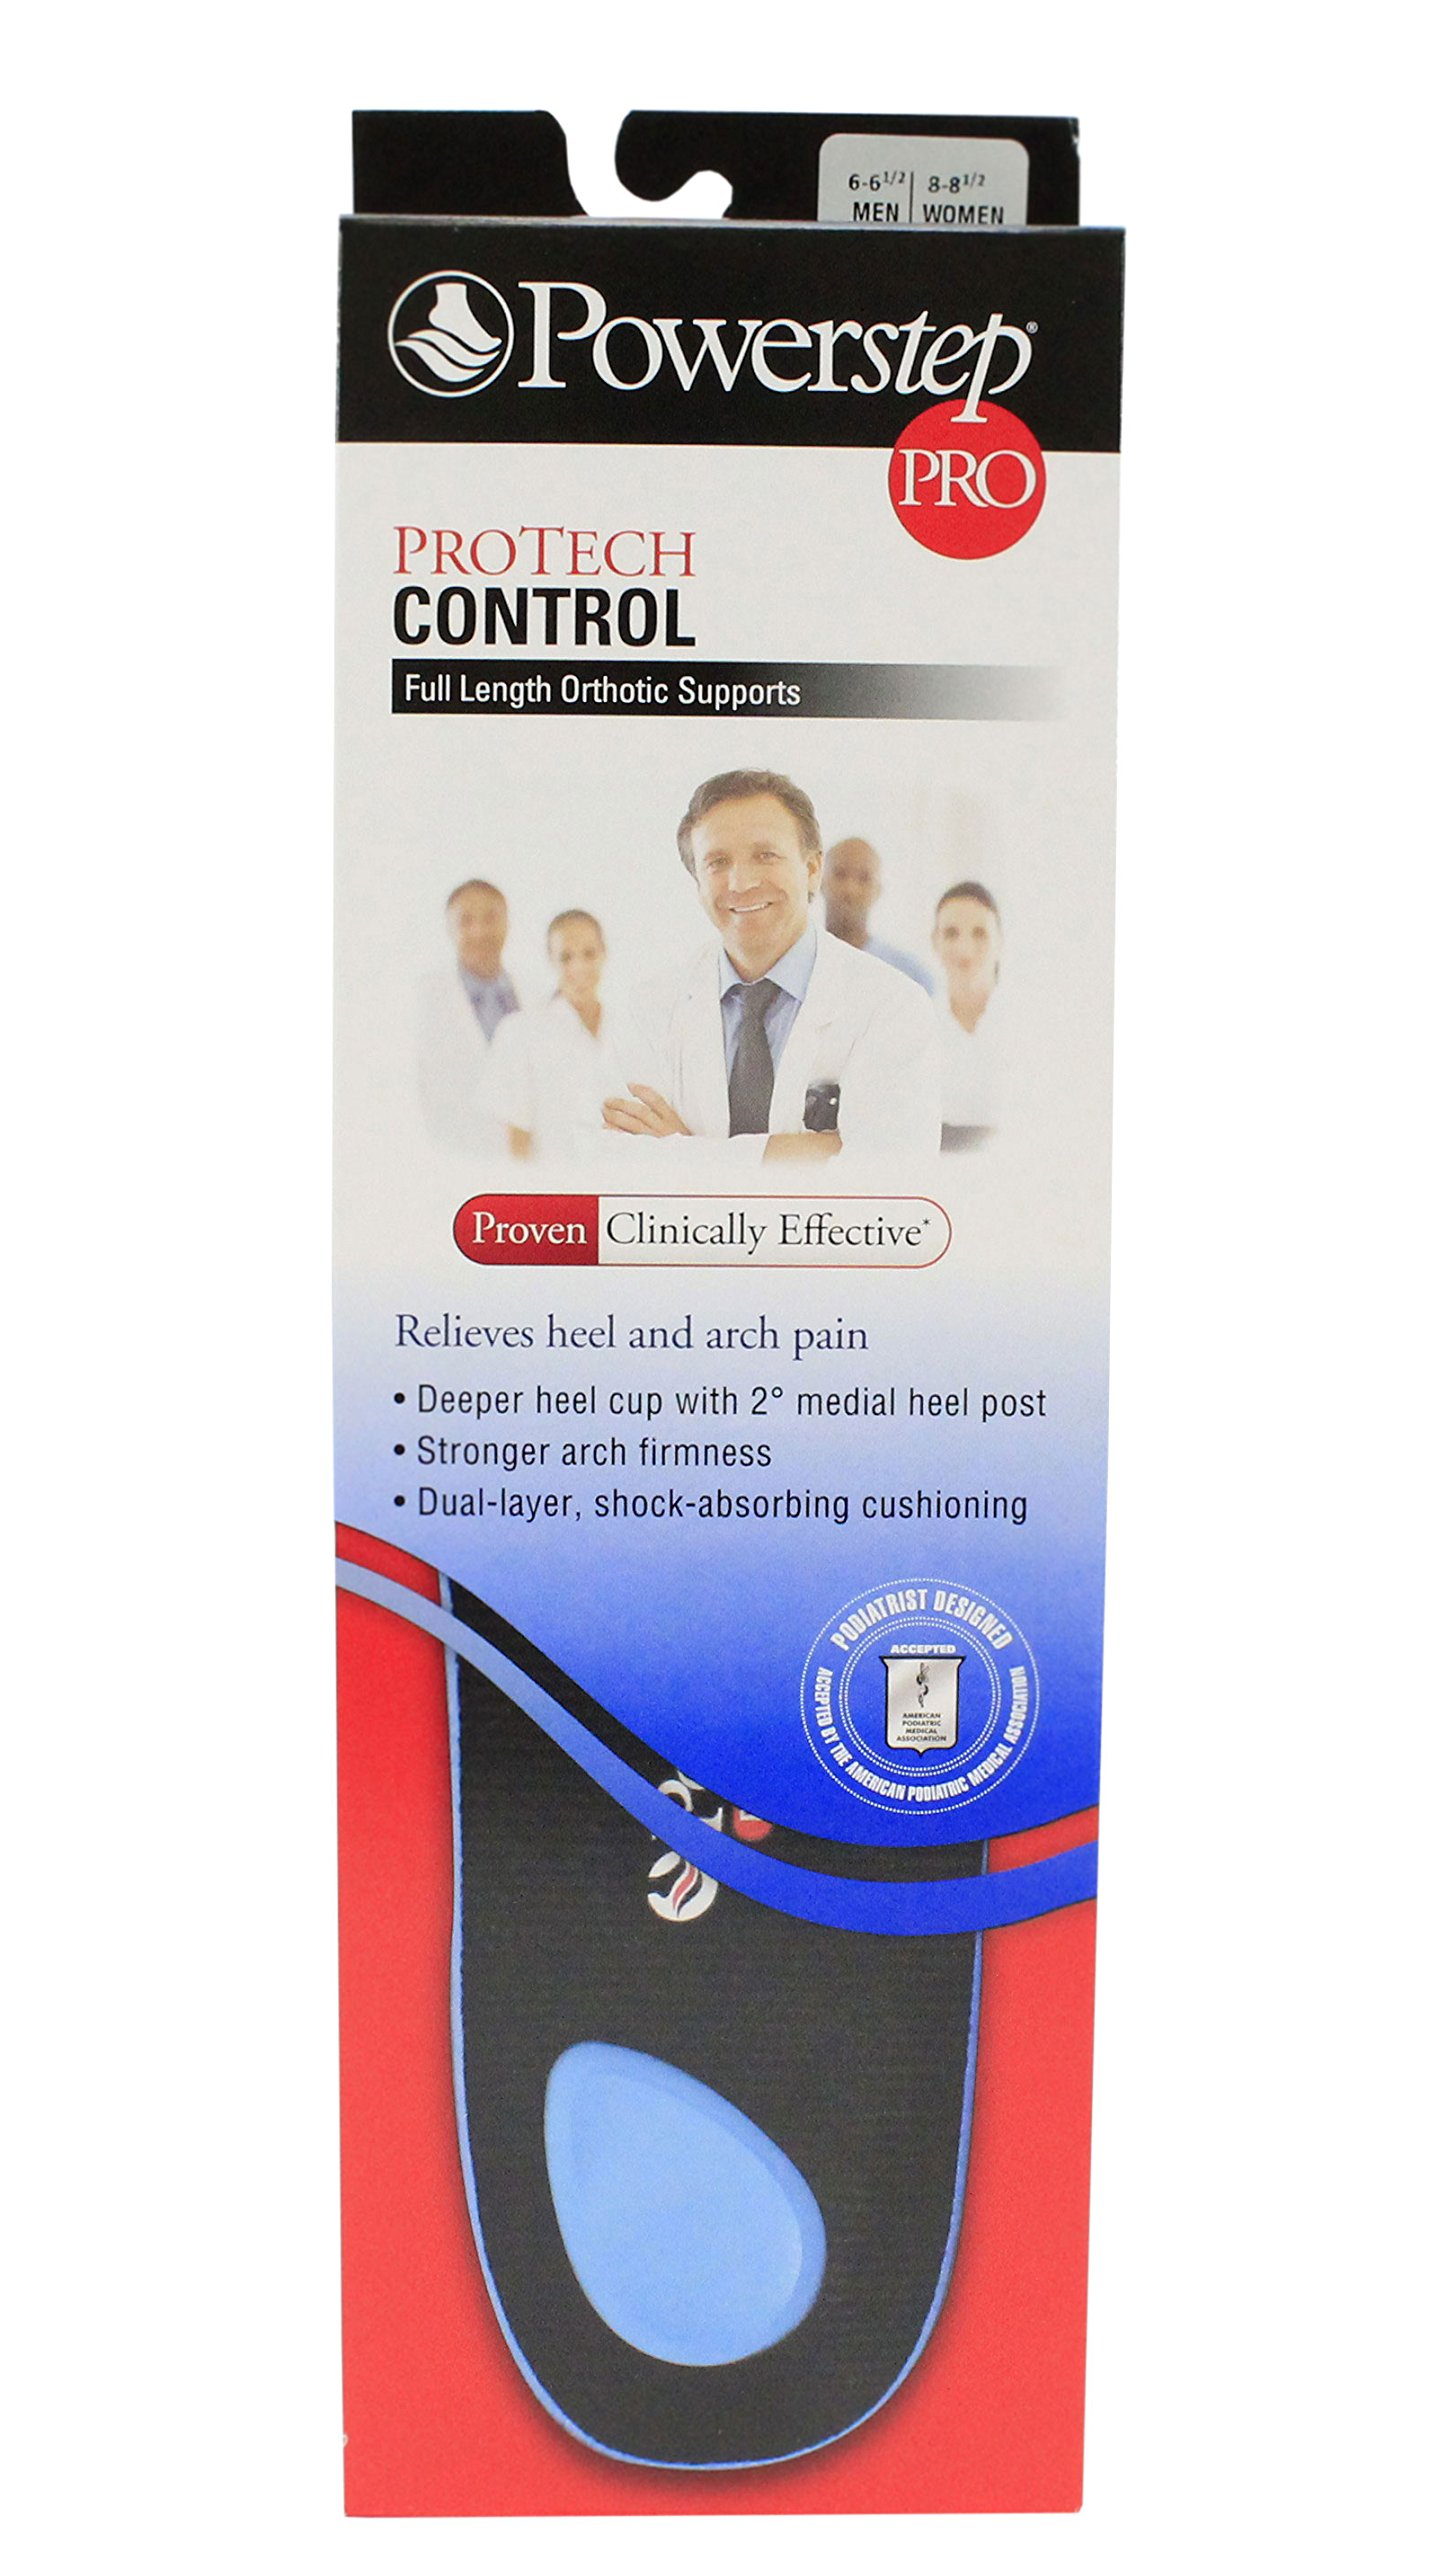 Powerstep Protech Control Pro Insoles 6-6.5 Men / 8-8.5 Women by Powerstep